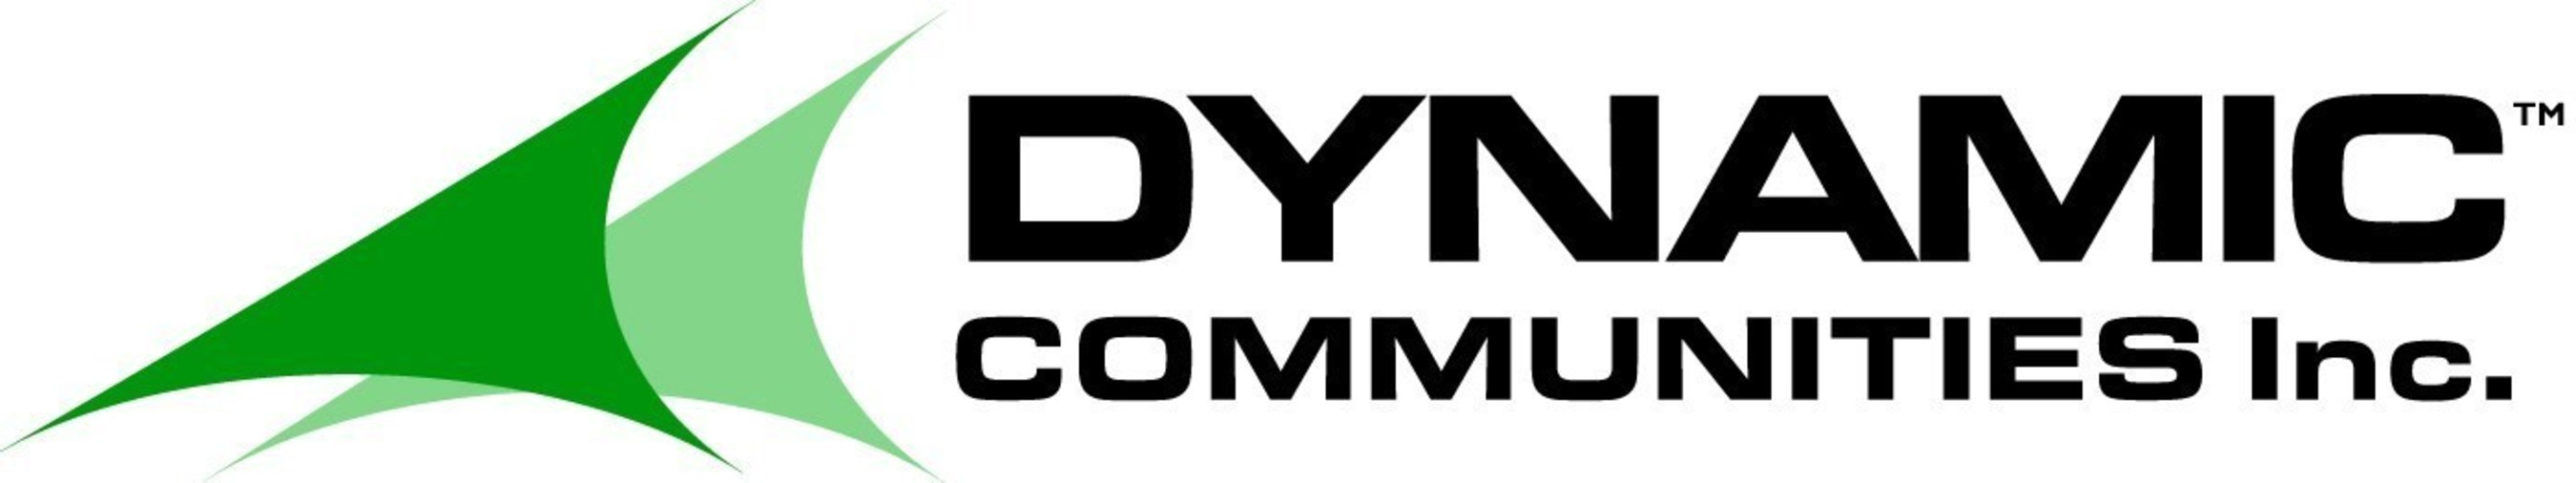 Dynamic Communities, Inc. Announces DayONE to Envision 2016